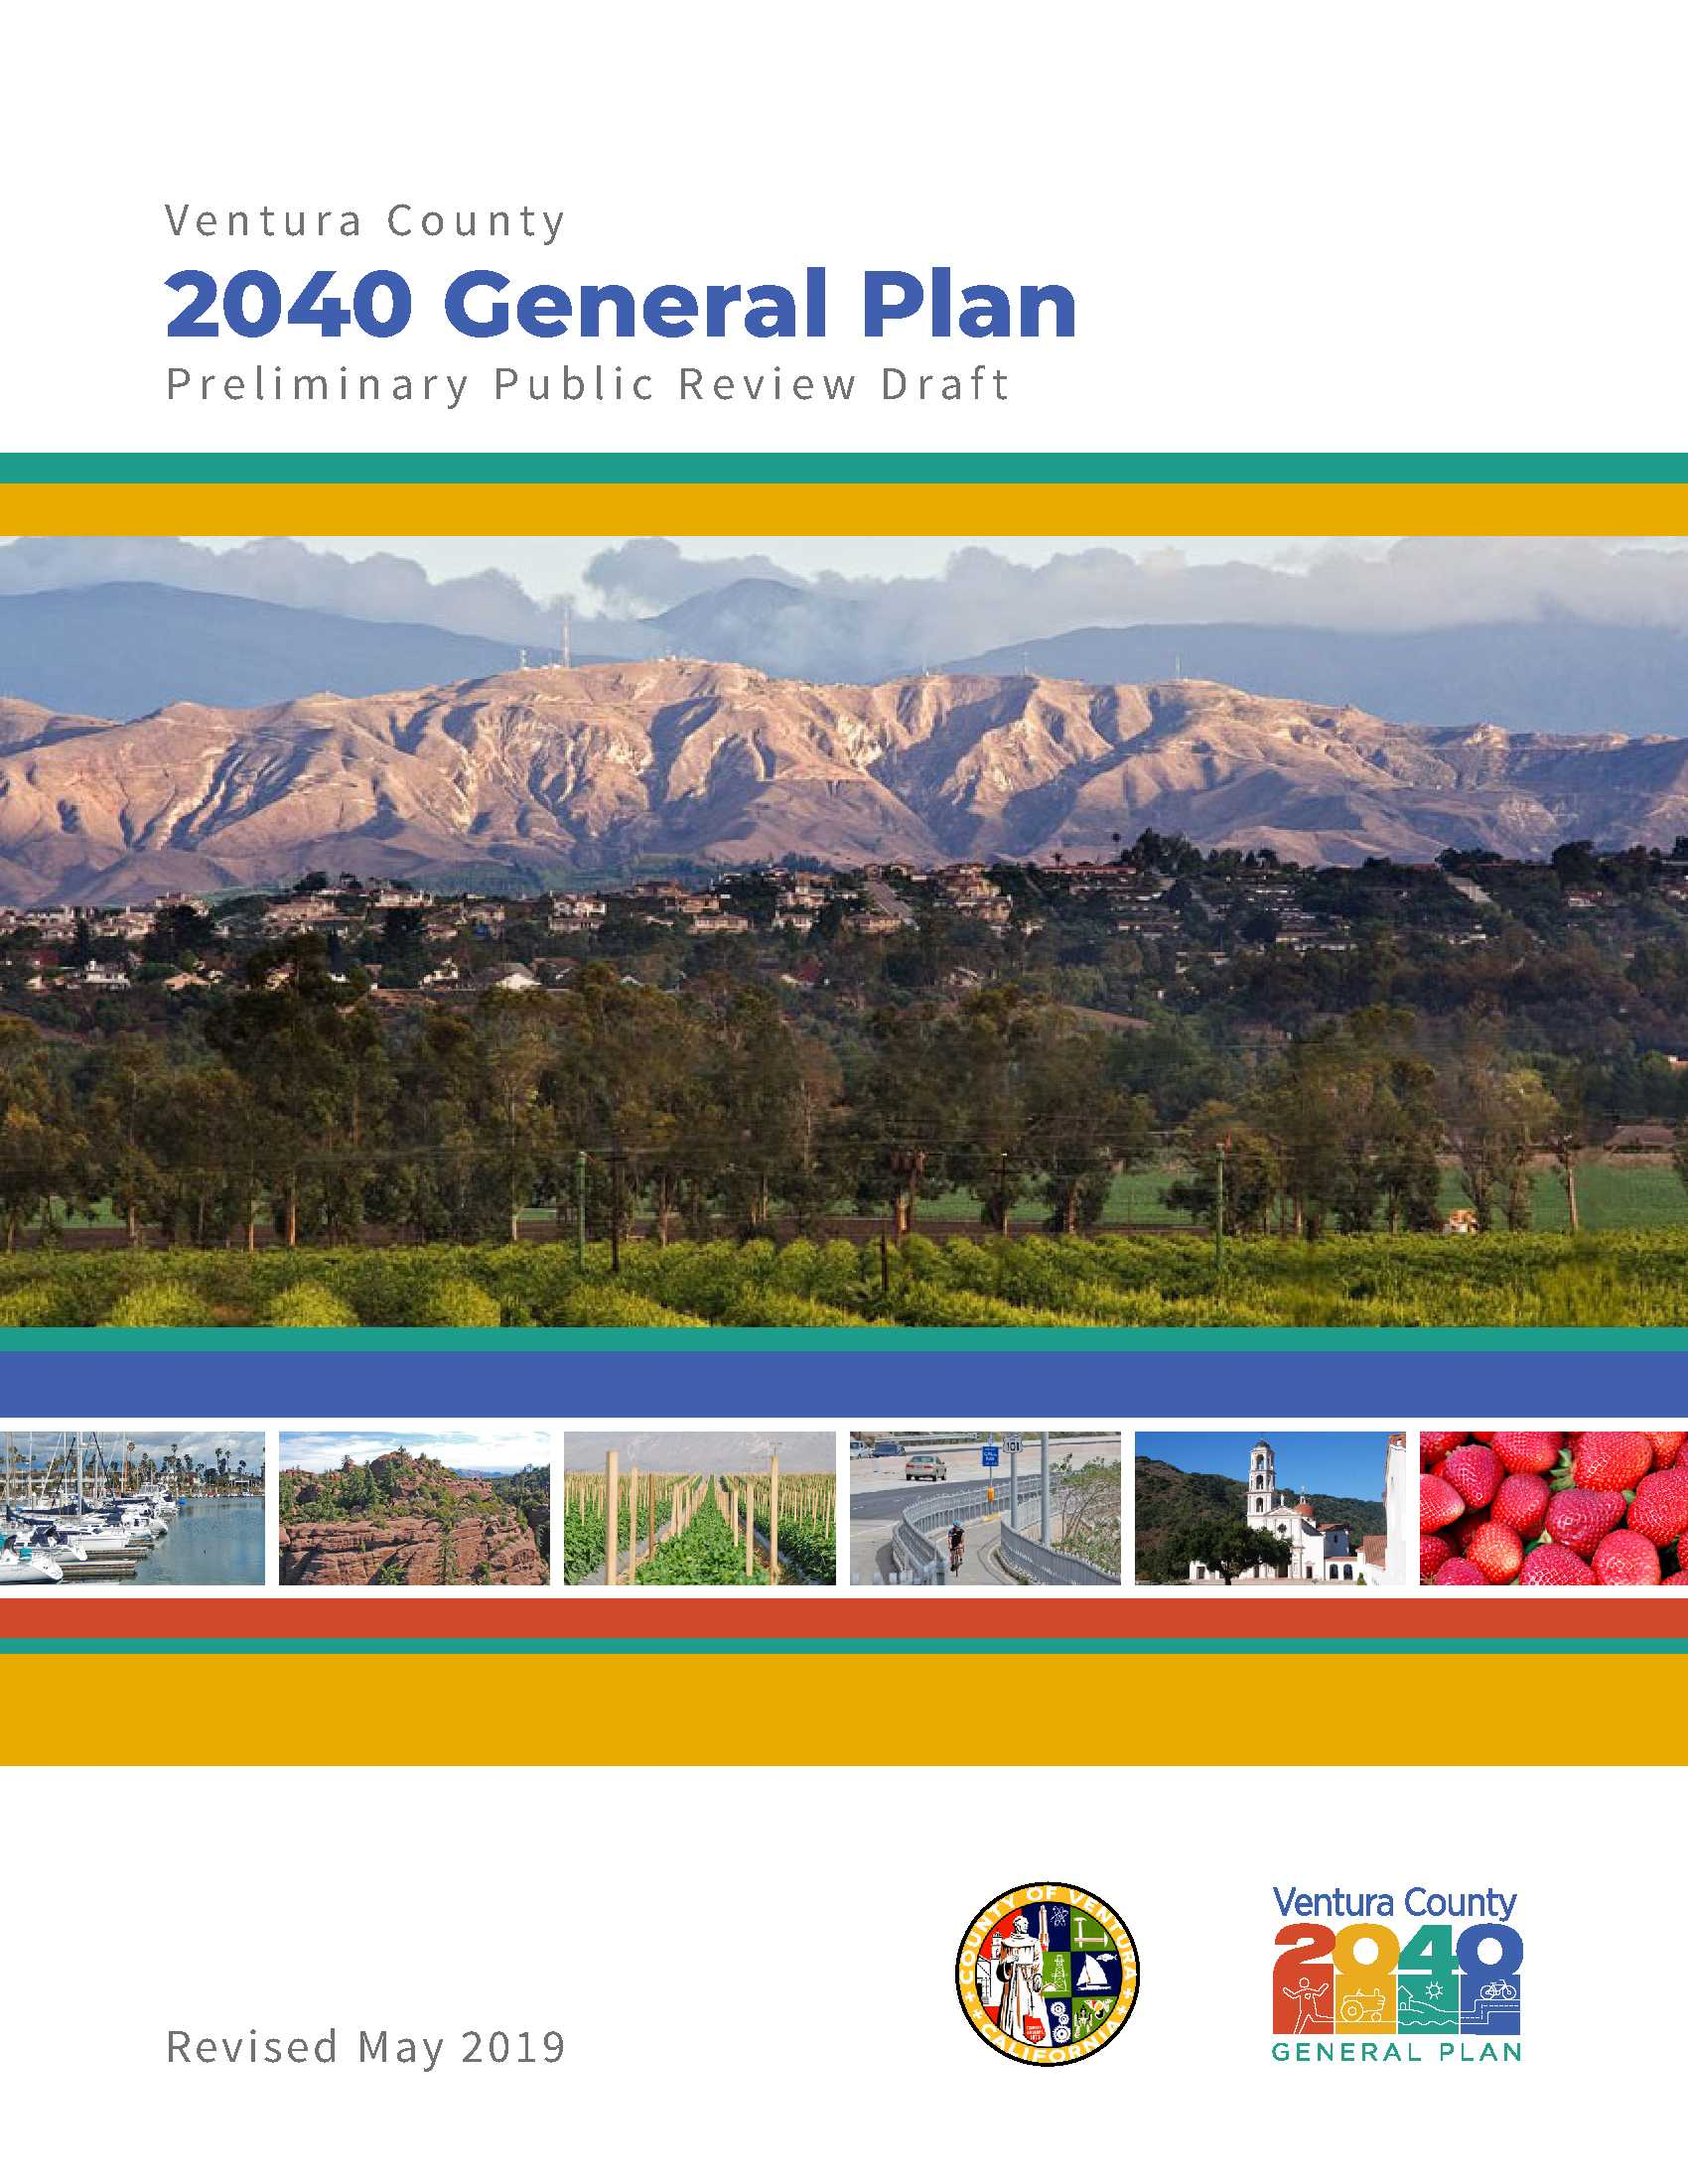 PPRD 2040 General Plan Cover Image